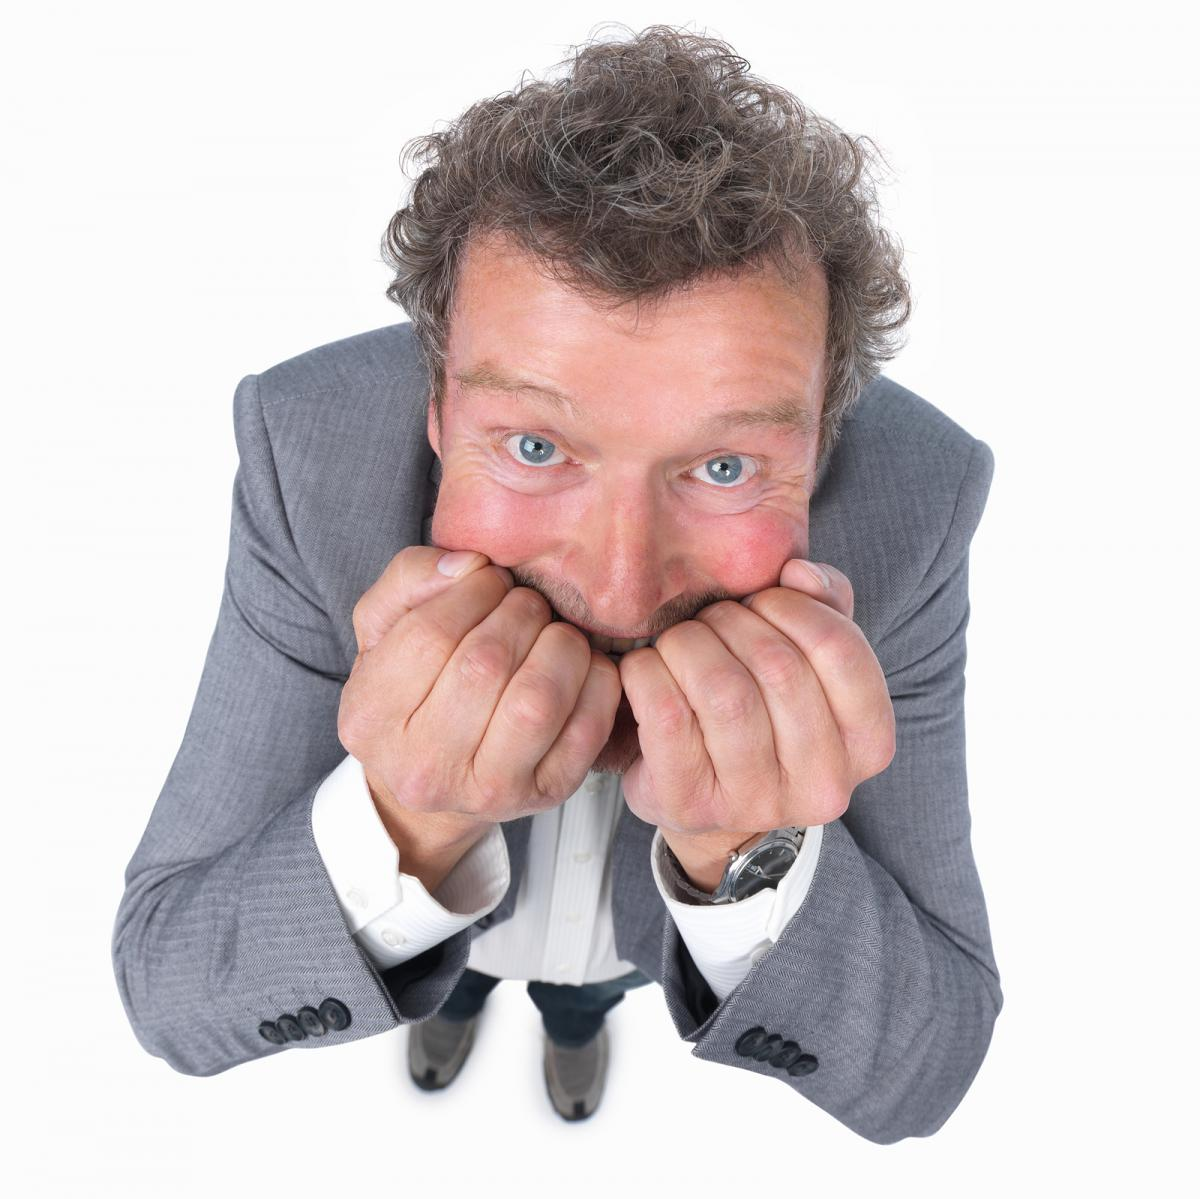 bigstock_Stressed_Mature_Businessman_Bi_4087811.jpg